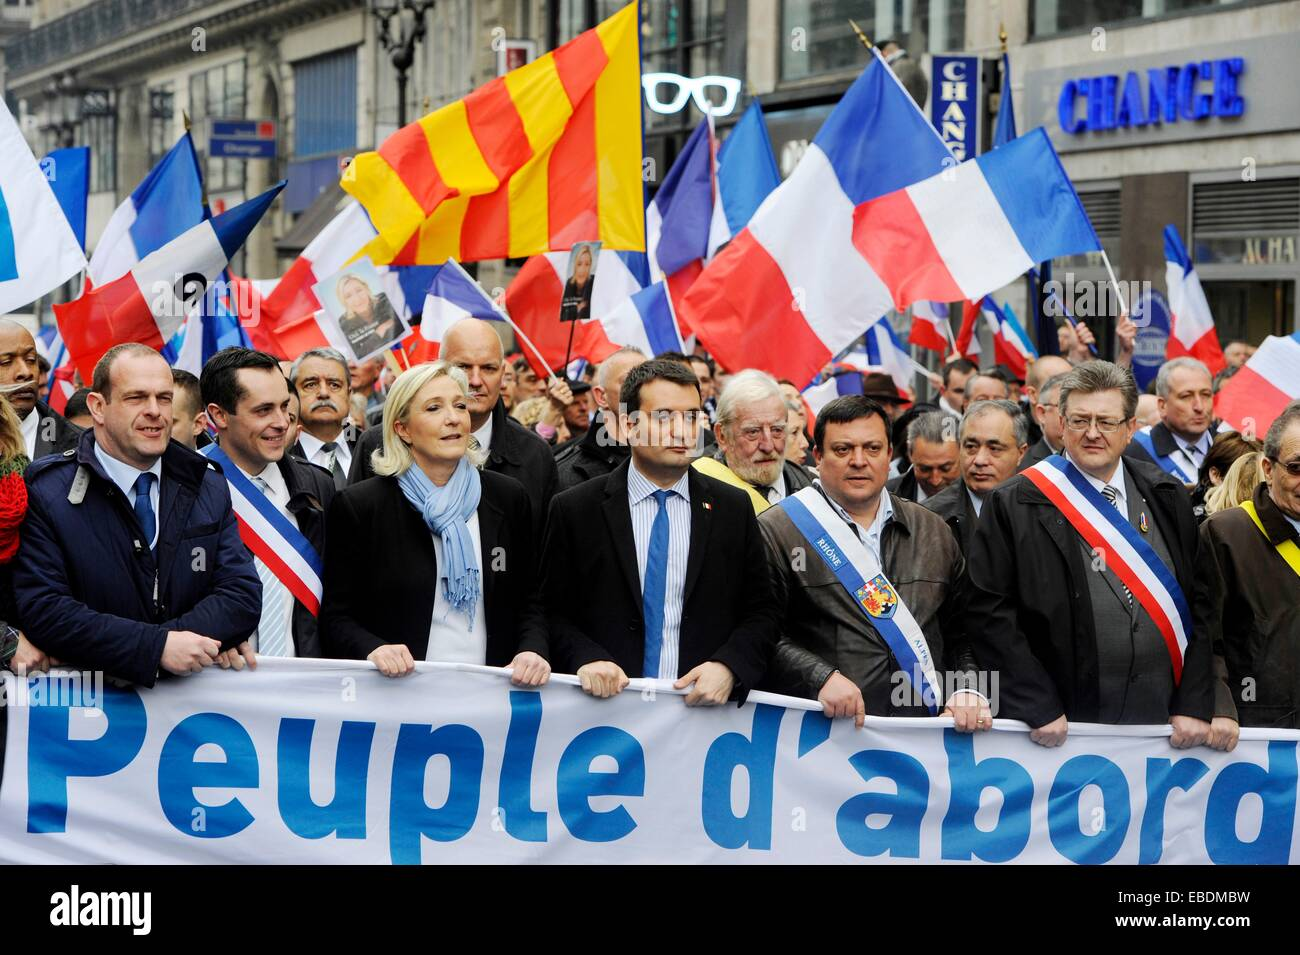 a history of the front national in france French far-right front national  in the case of france,  robert zaretsky is a professor of history at the university of houston's honors college.